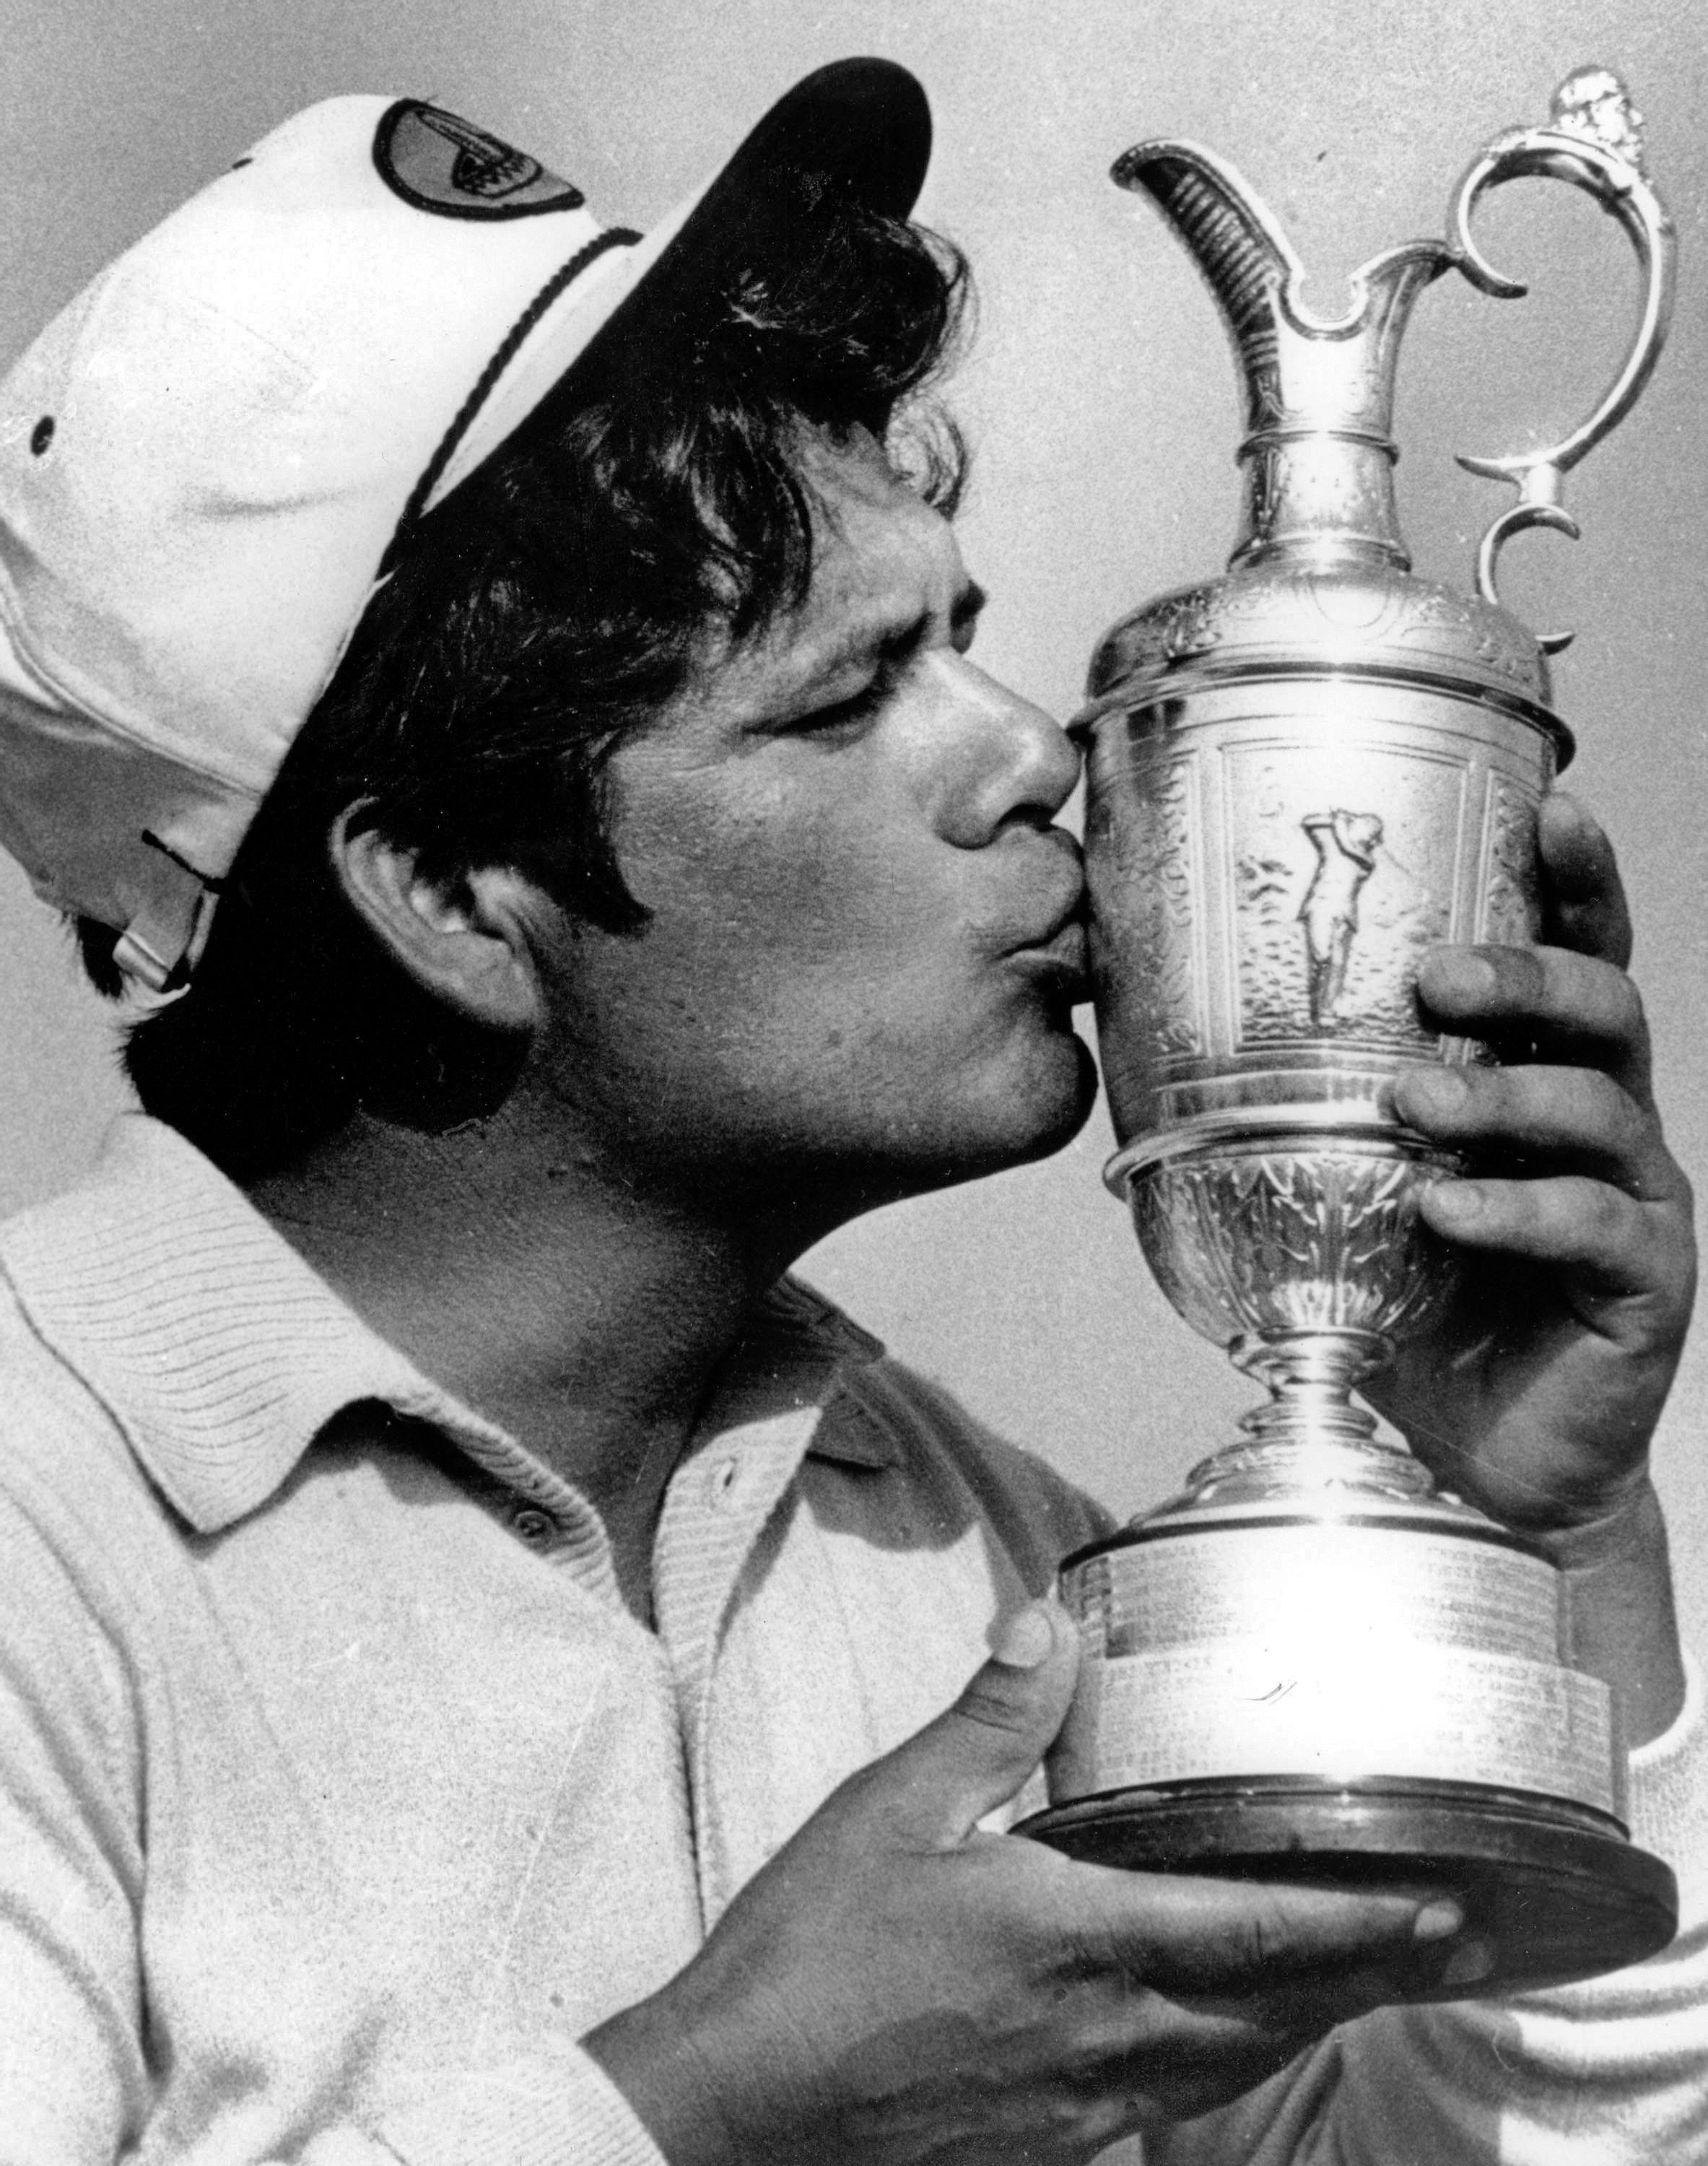 FILE - In this Saturday, July 15, 1972 file photo, Lee Trevino kisses the British Open Golf Championship cup after he won the title for the second year running in Muirfield, Scotland. Trevino's triumph shattered Jack Nicklaus' dream of a one-year sweep of